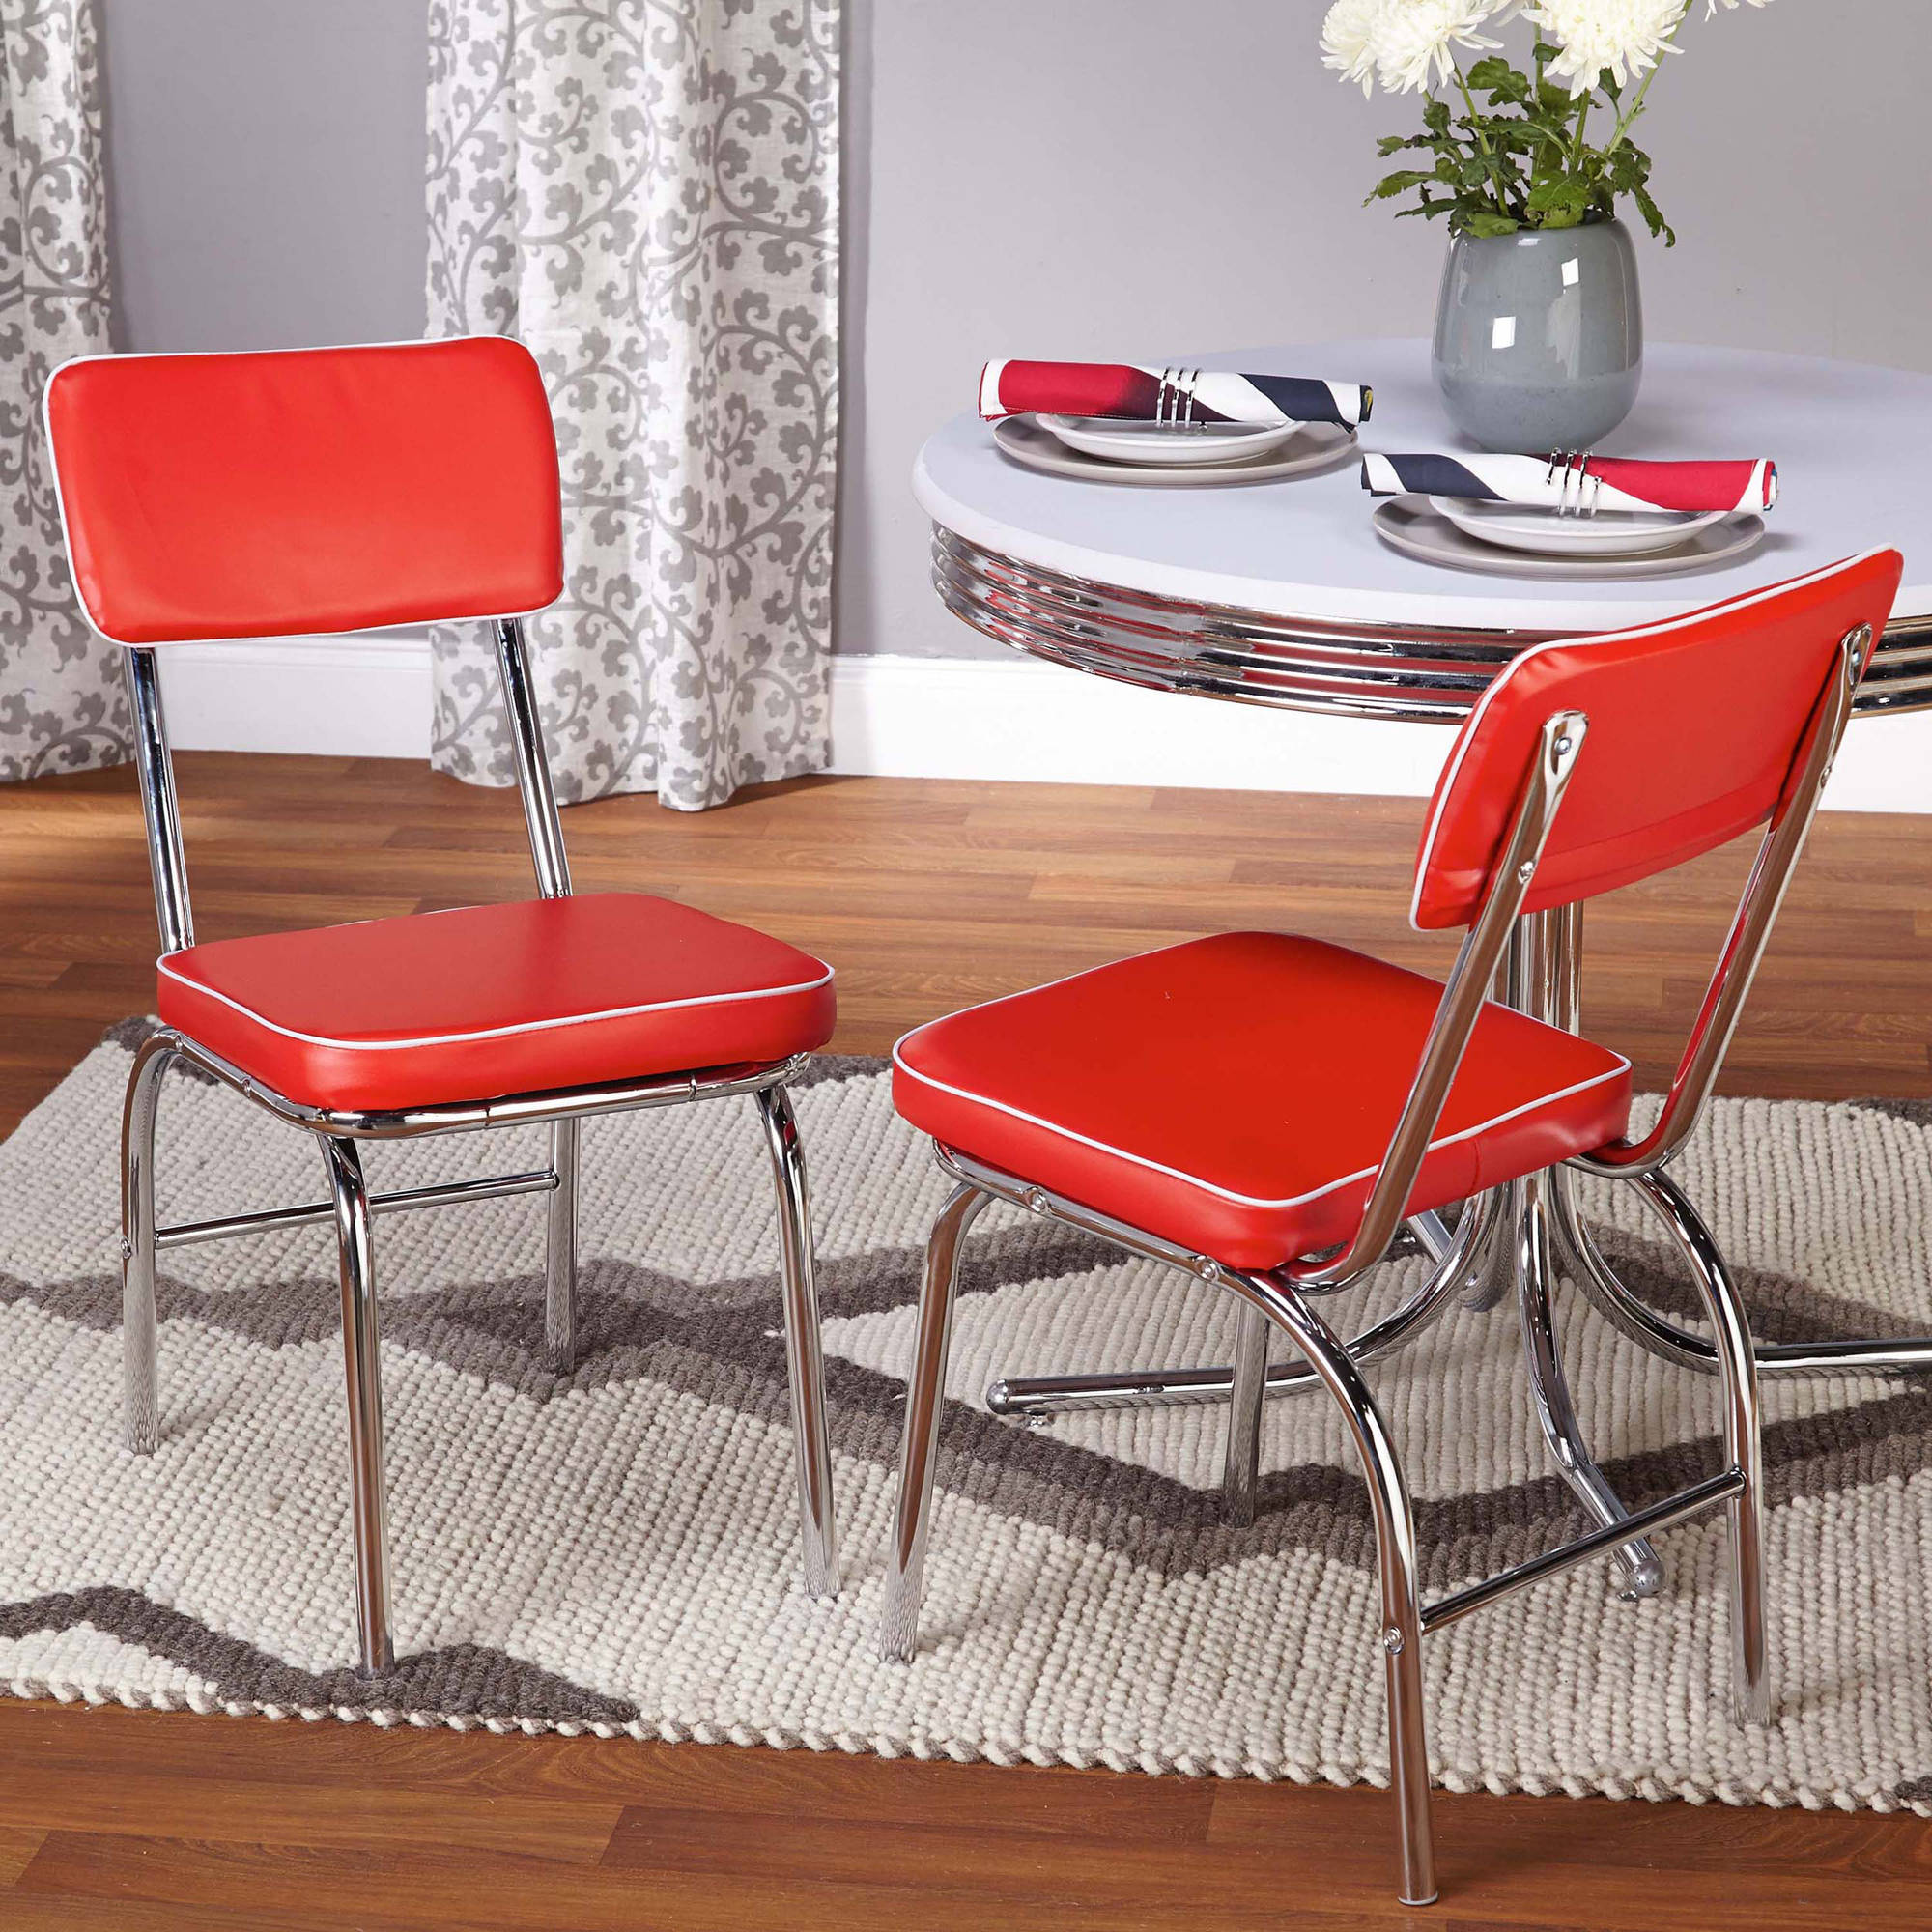 red retro chairs. Retro Dining Chairs, Set Of 2, Red Chairs R